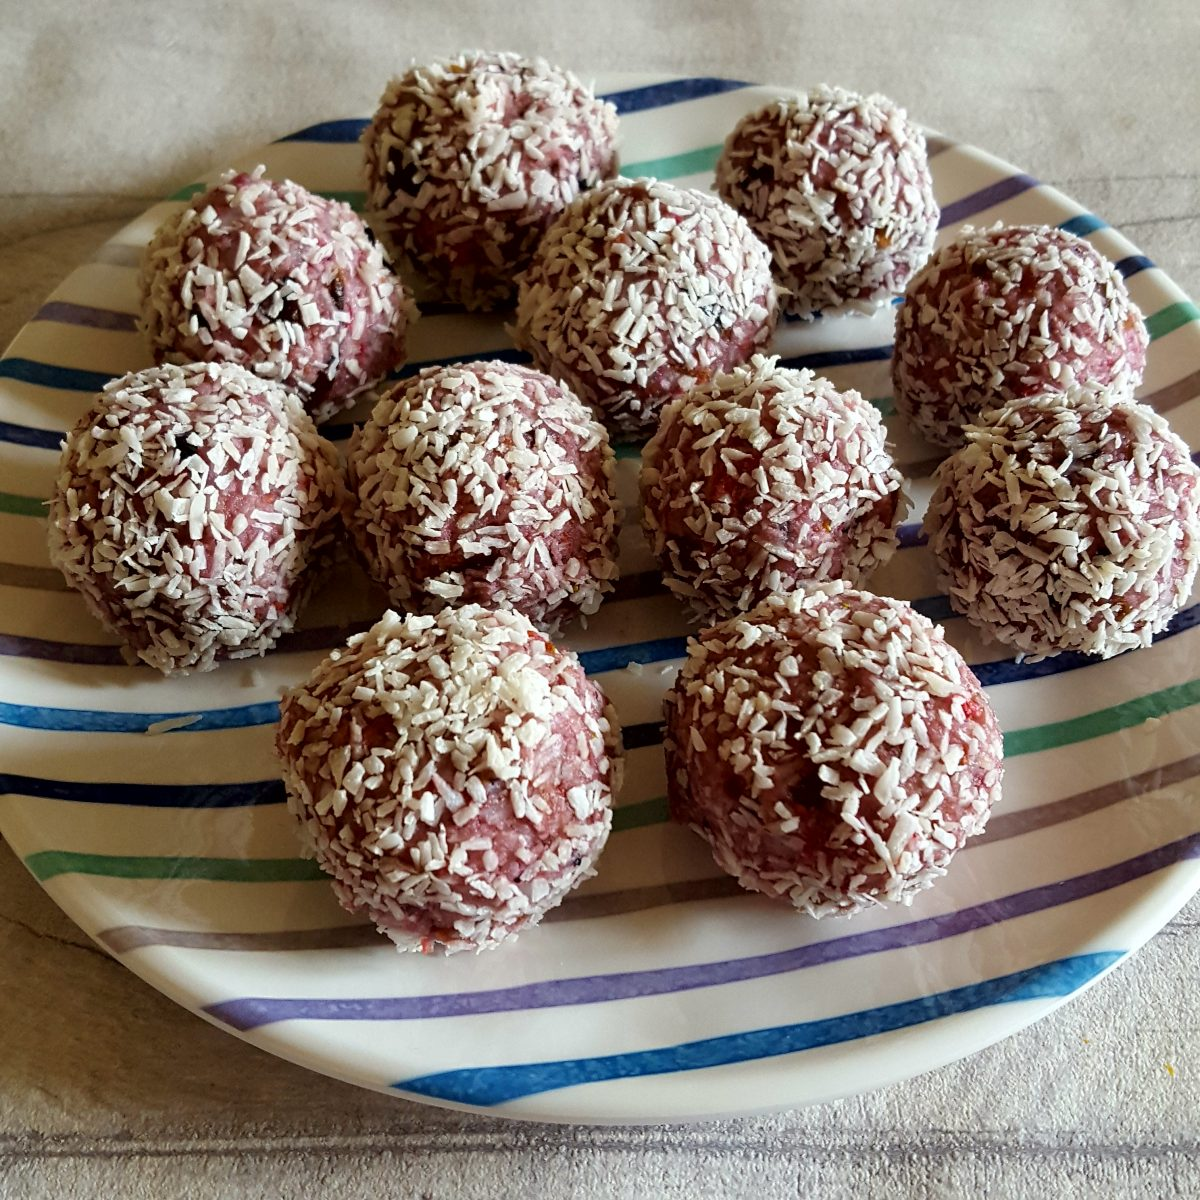 Berry coconut balls